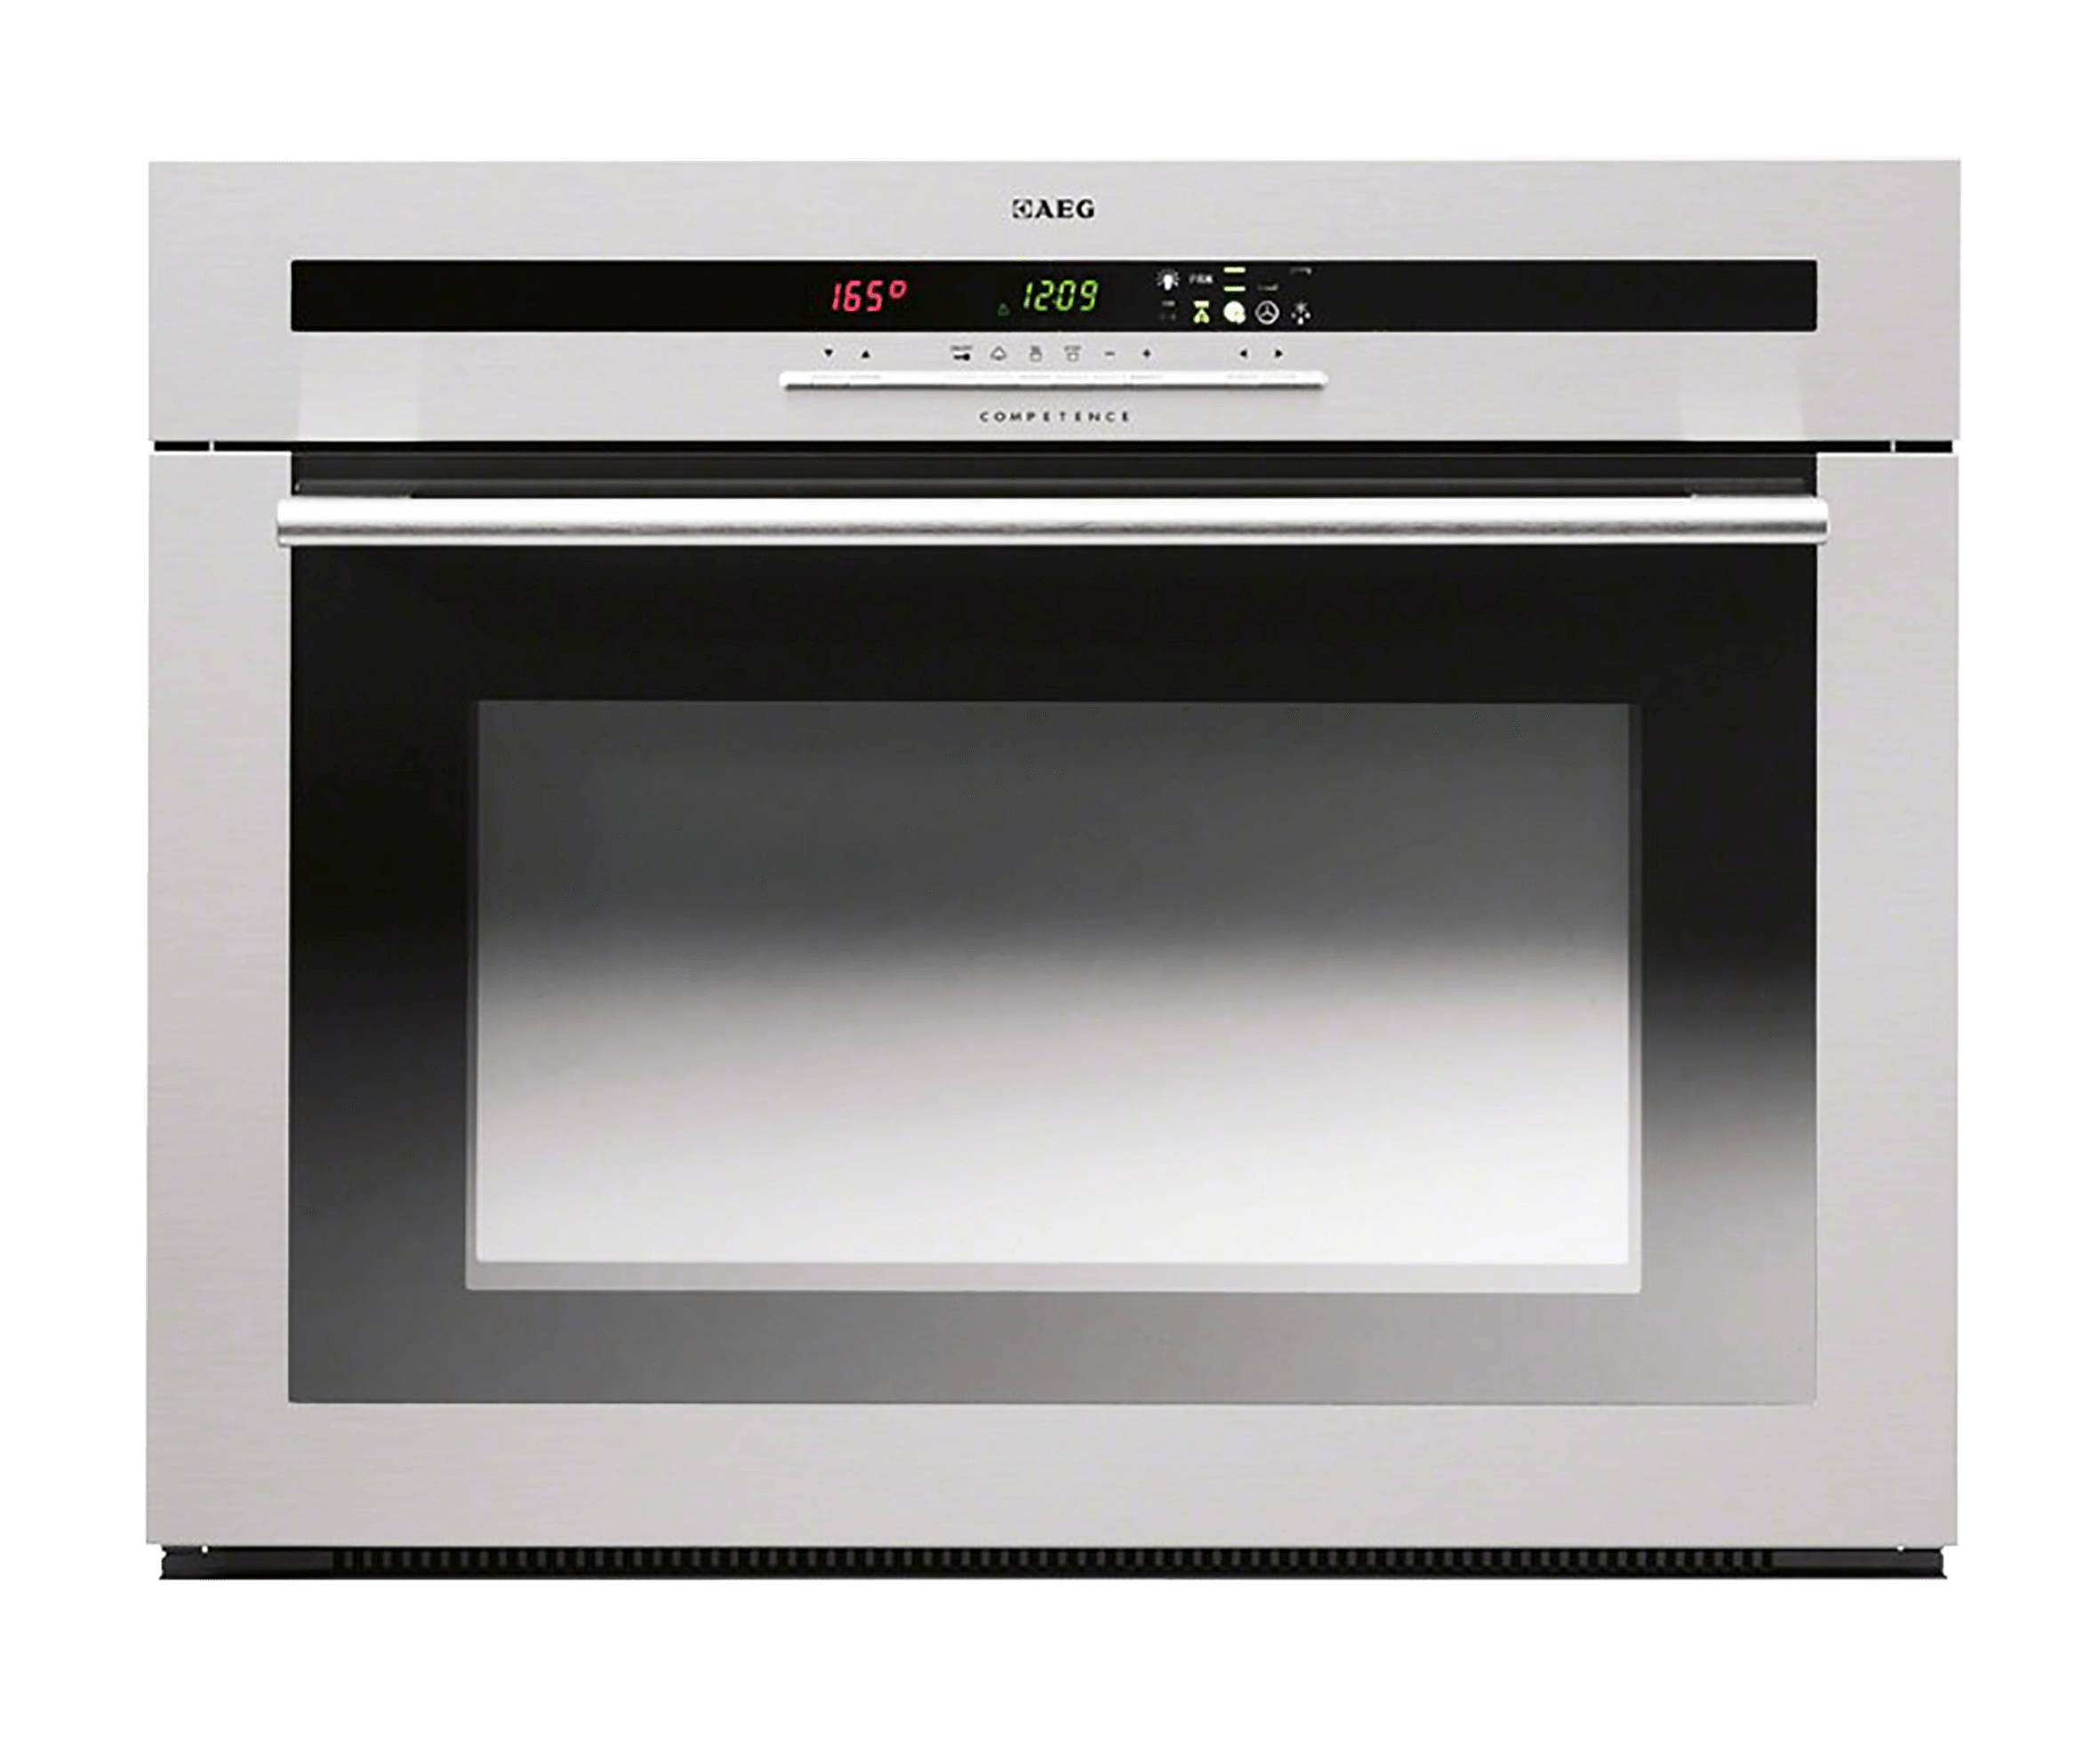 aeg built in u003cbr u003e oven s steel u003cbr u003emodel be7500 m newappliances rh newappliances co za aeg electrolux gas hob manual aeg electrolux stove manual